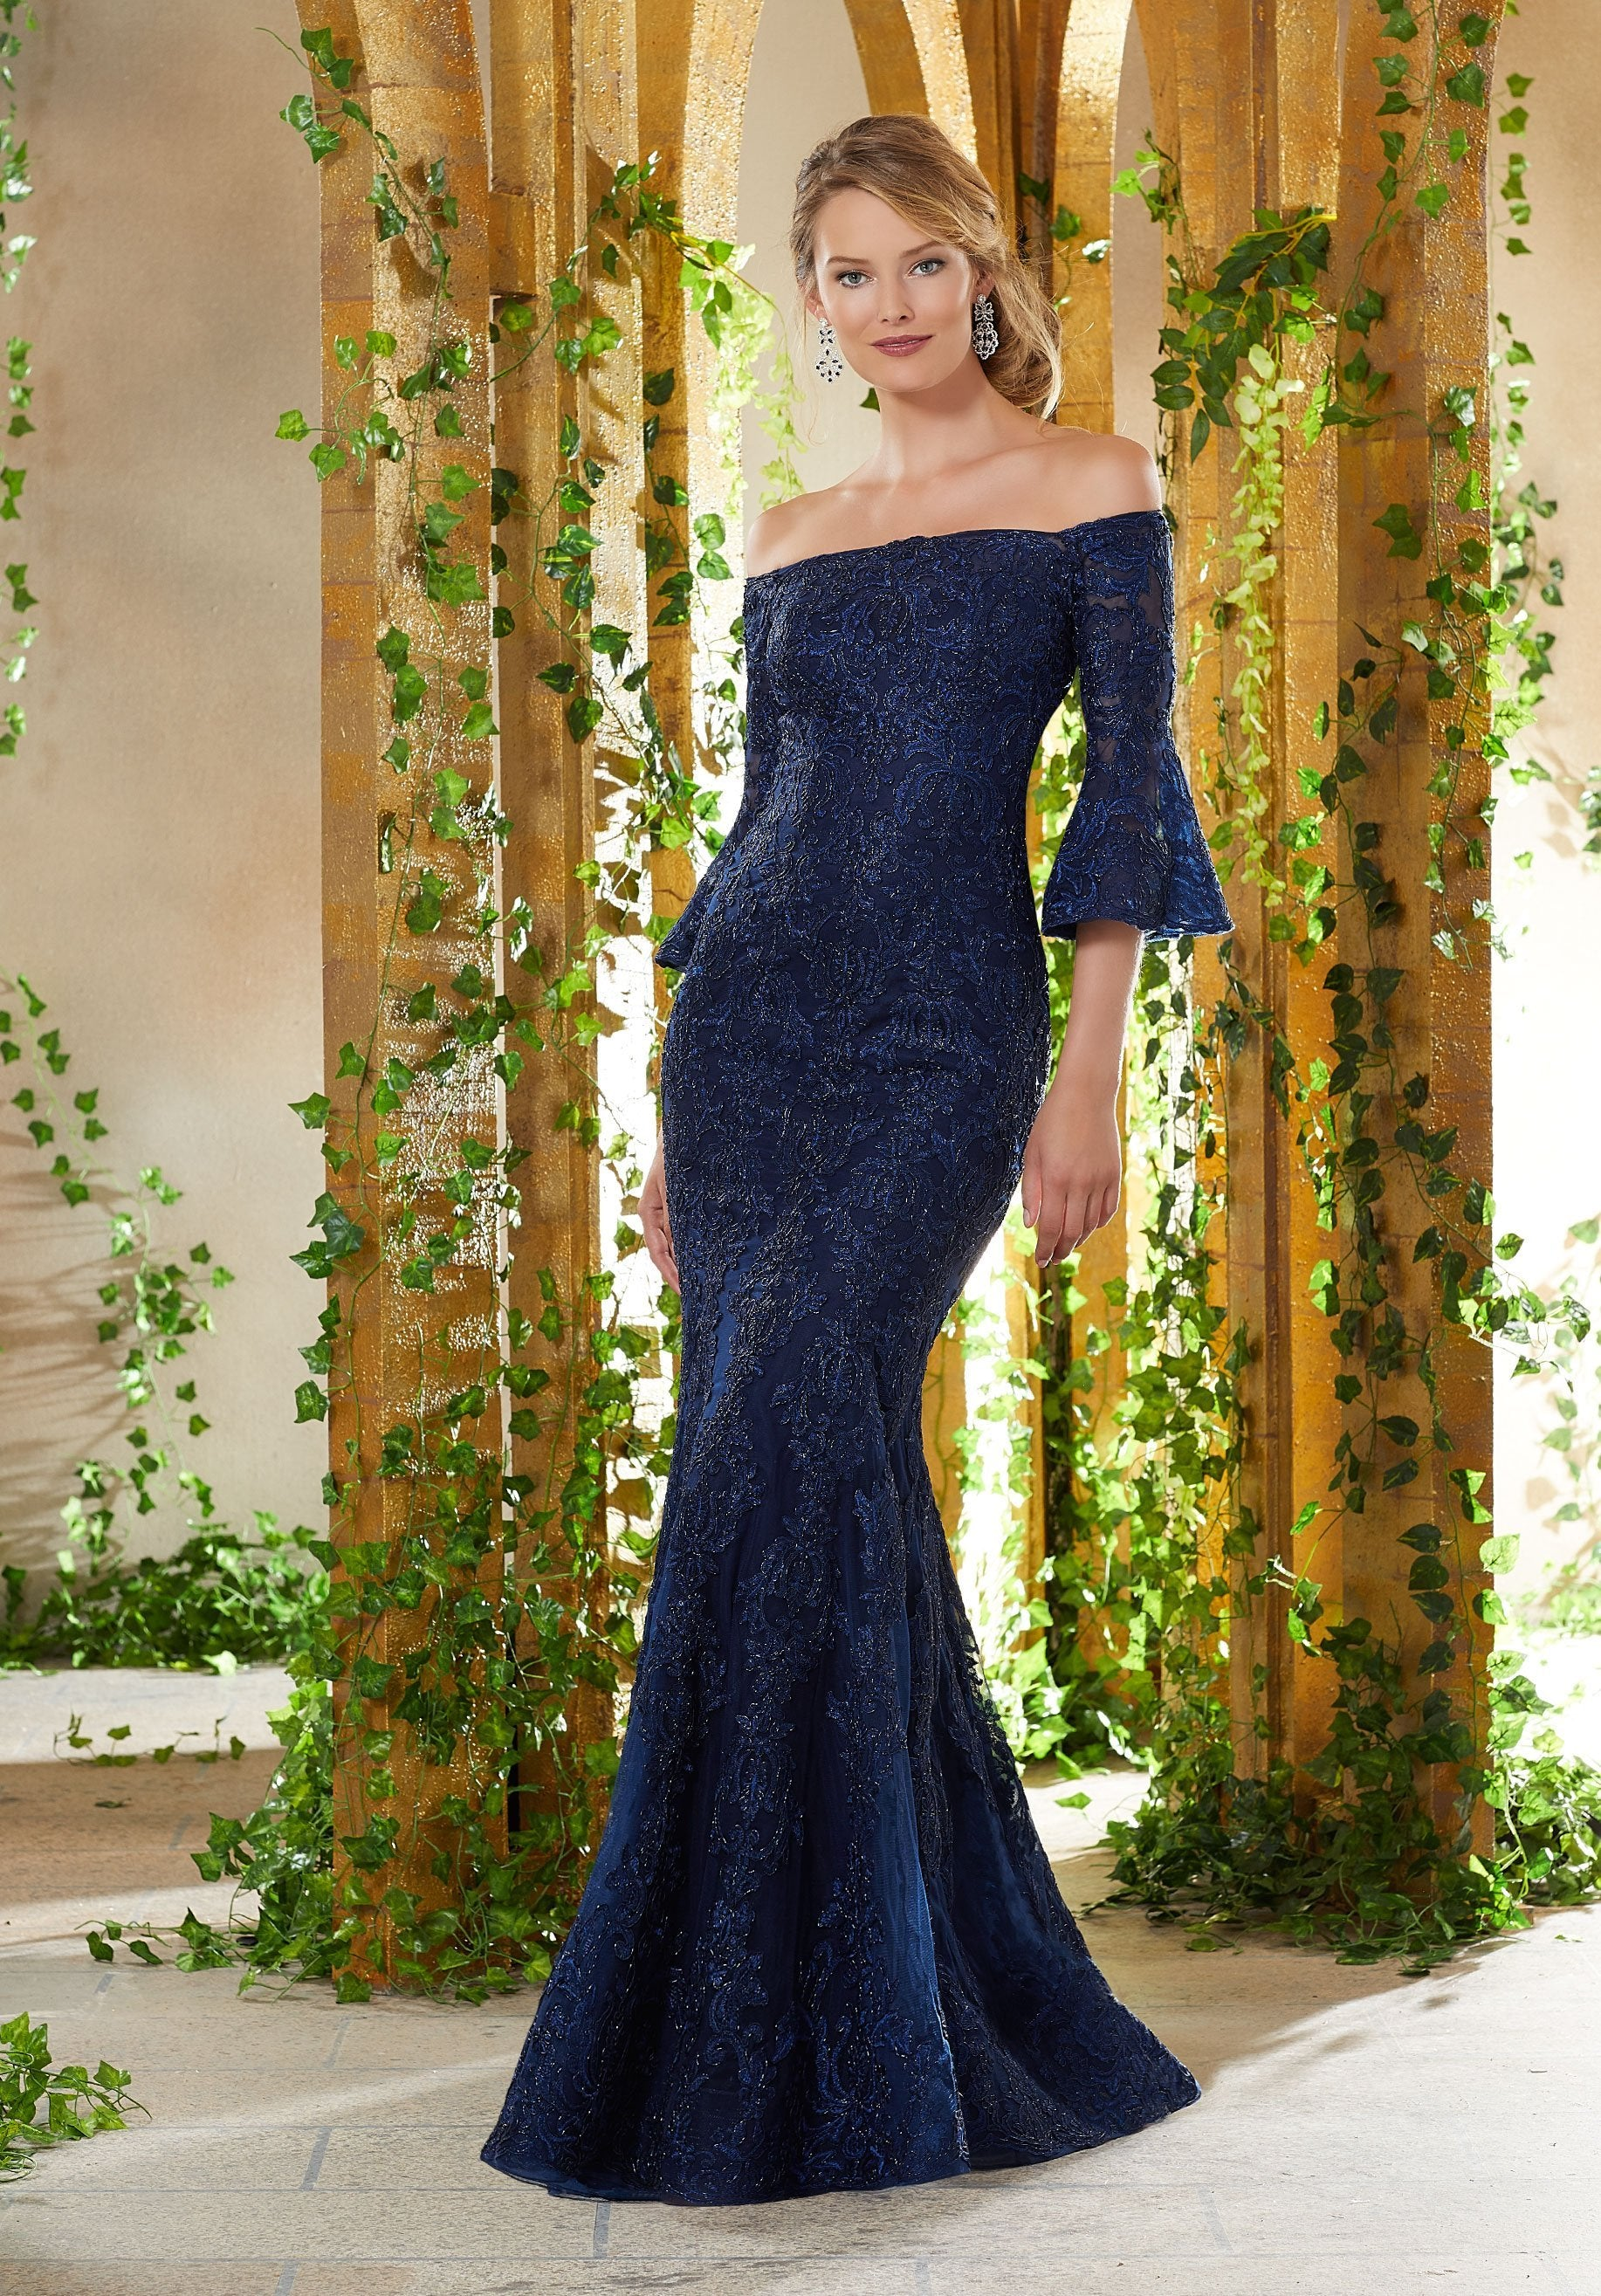 MGNY By Mori Lee - Bell Sleeve Metallic Lace Off-Shoulder Dress 71930SC In Blue